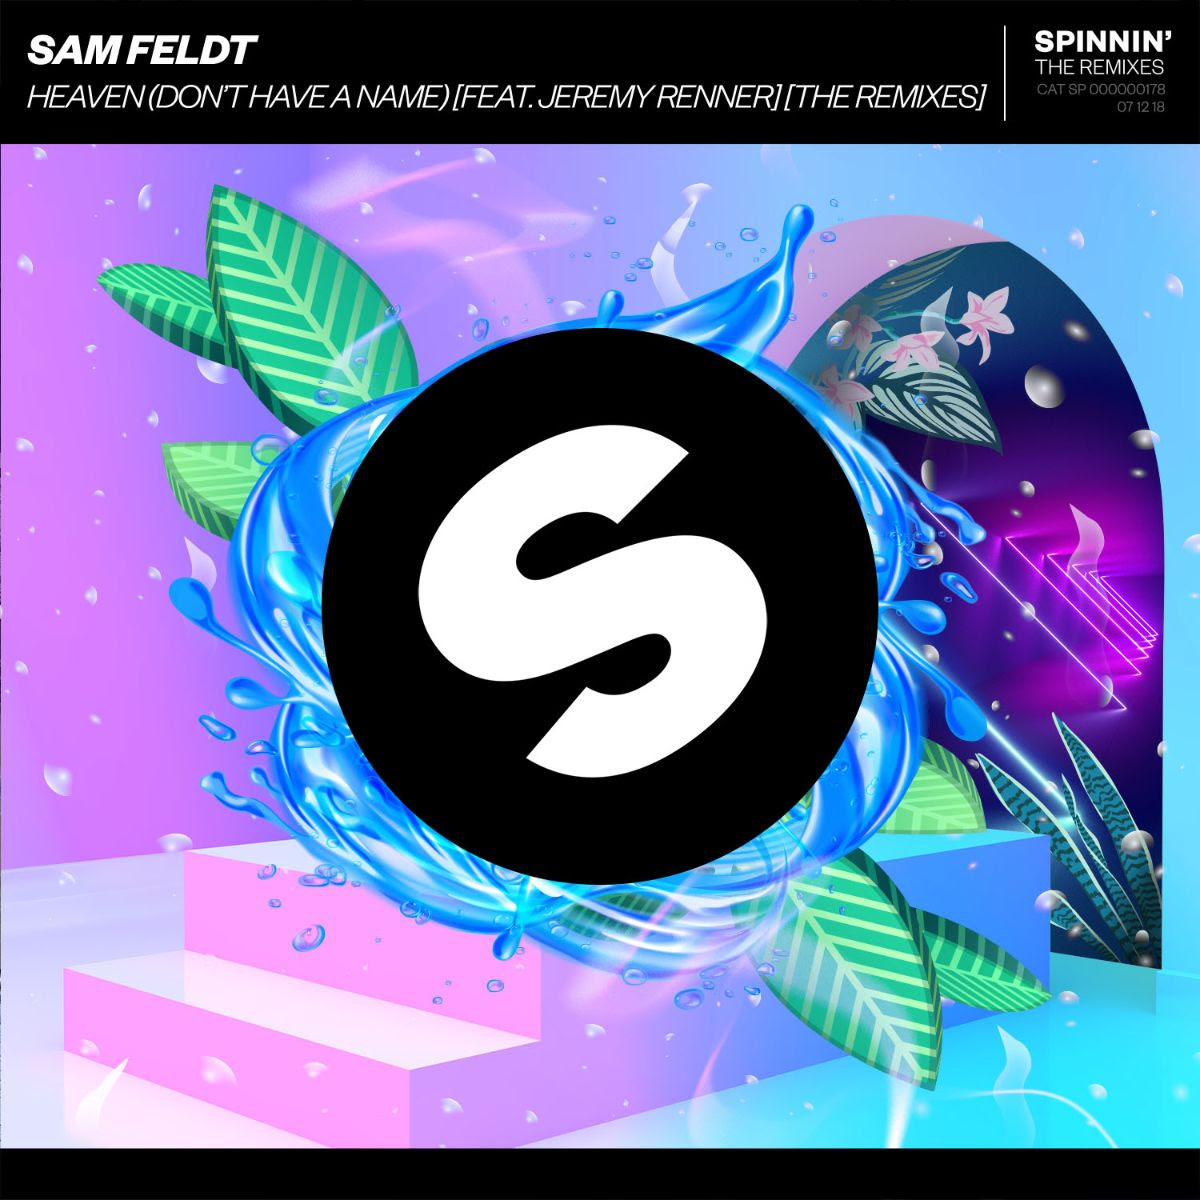 """Heaven"" de Sam Feldt y Jeremy Renner (Don't Have A Name) recibe nuevos remixes de Dastic y SLVR"